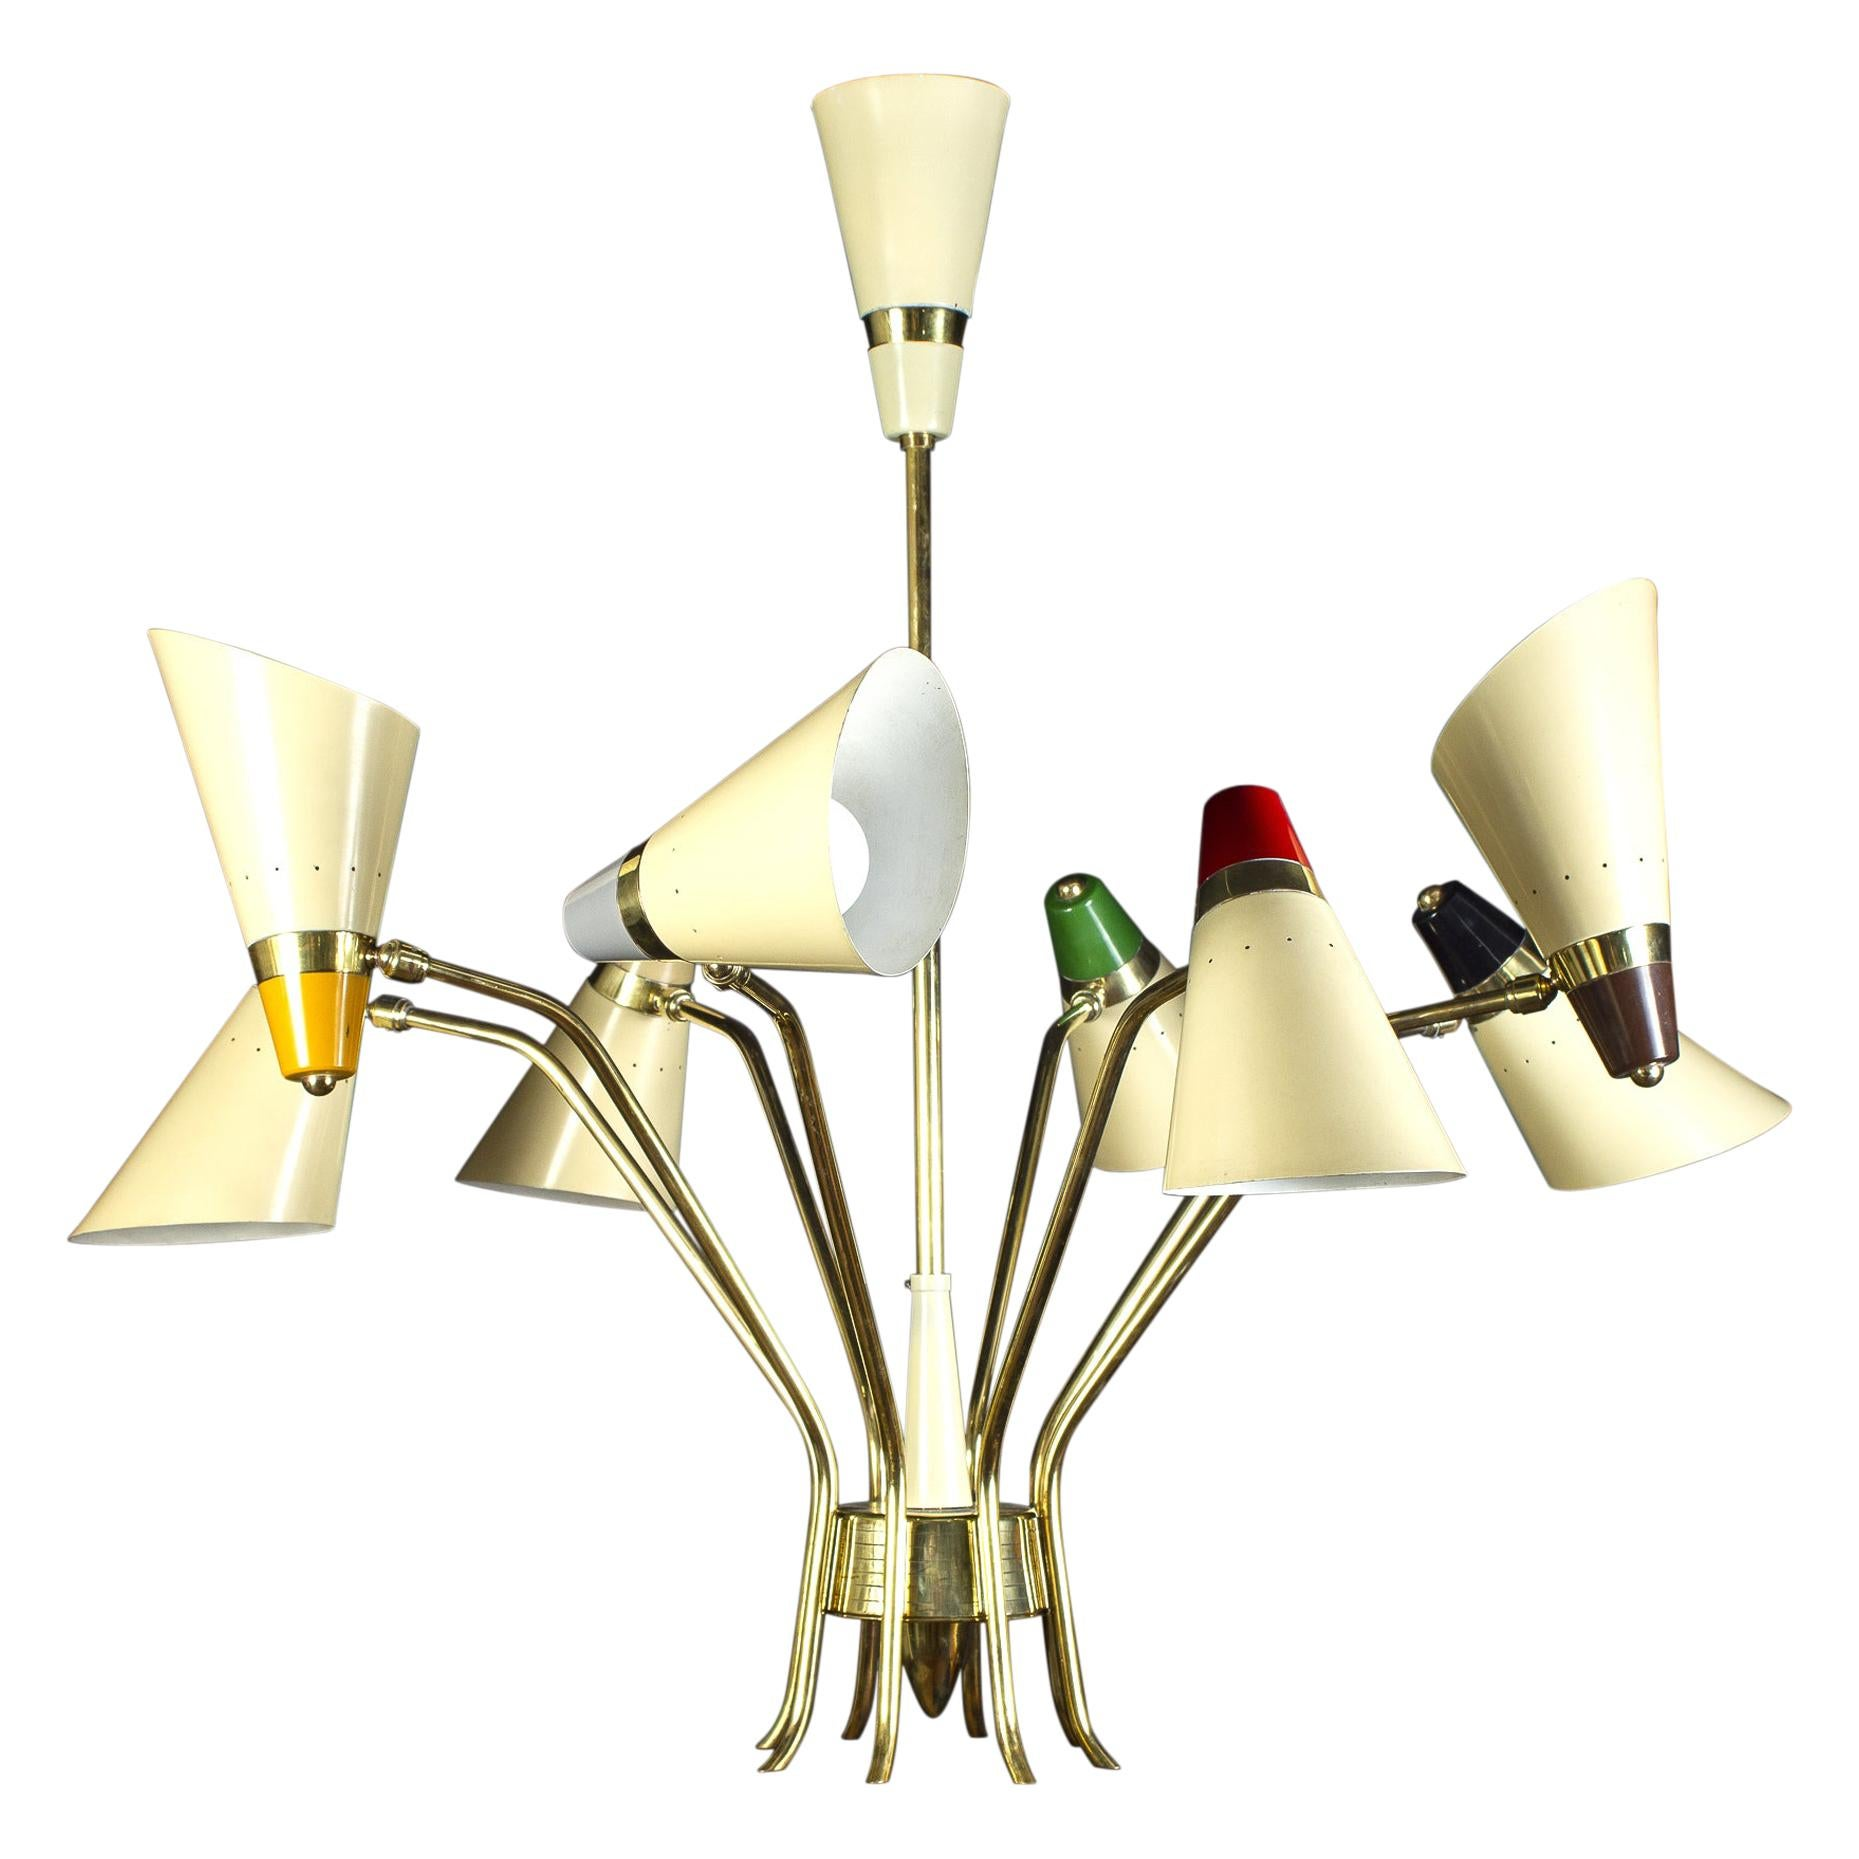 Stunning Midcentury Stilnovo Attr. Multi-Color Flexible Chandelier, 1958